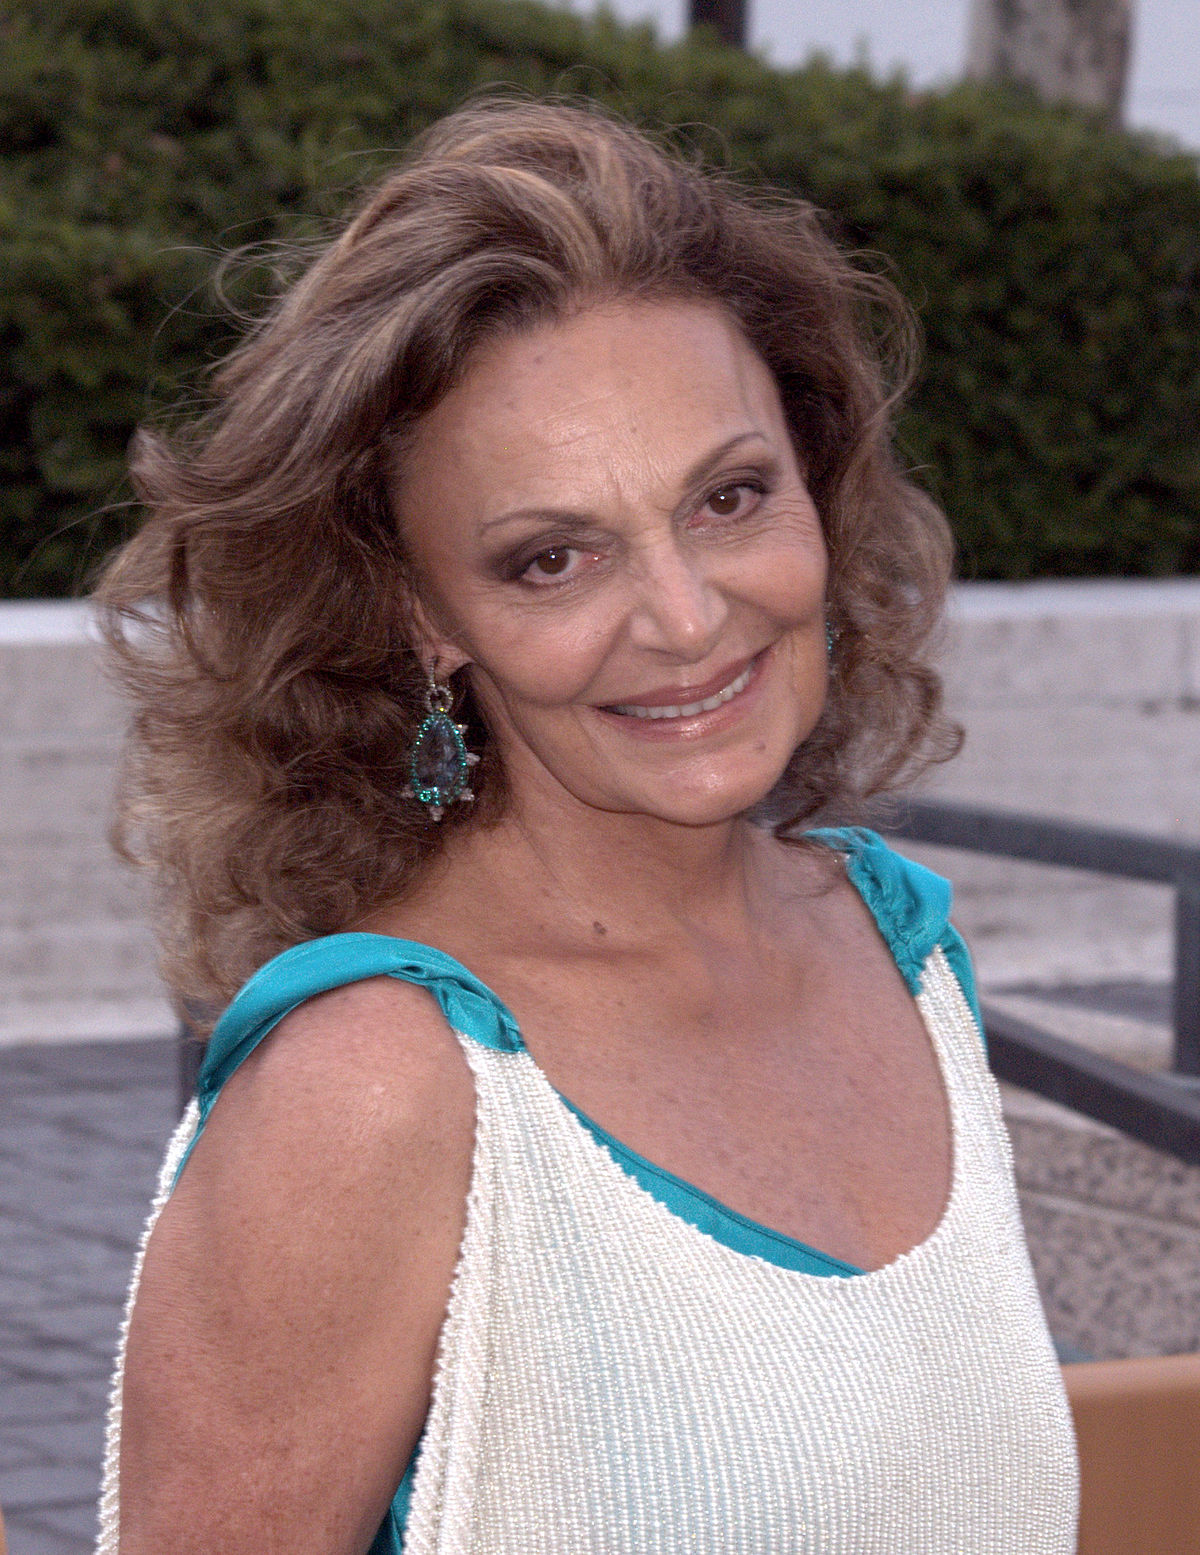 diane von f rstenberg wikipedia. Black Bedroom Furniture Sets. Home Design Ideas